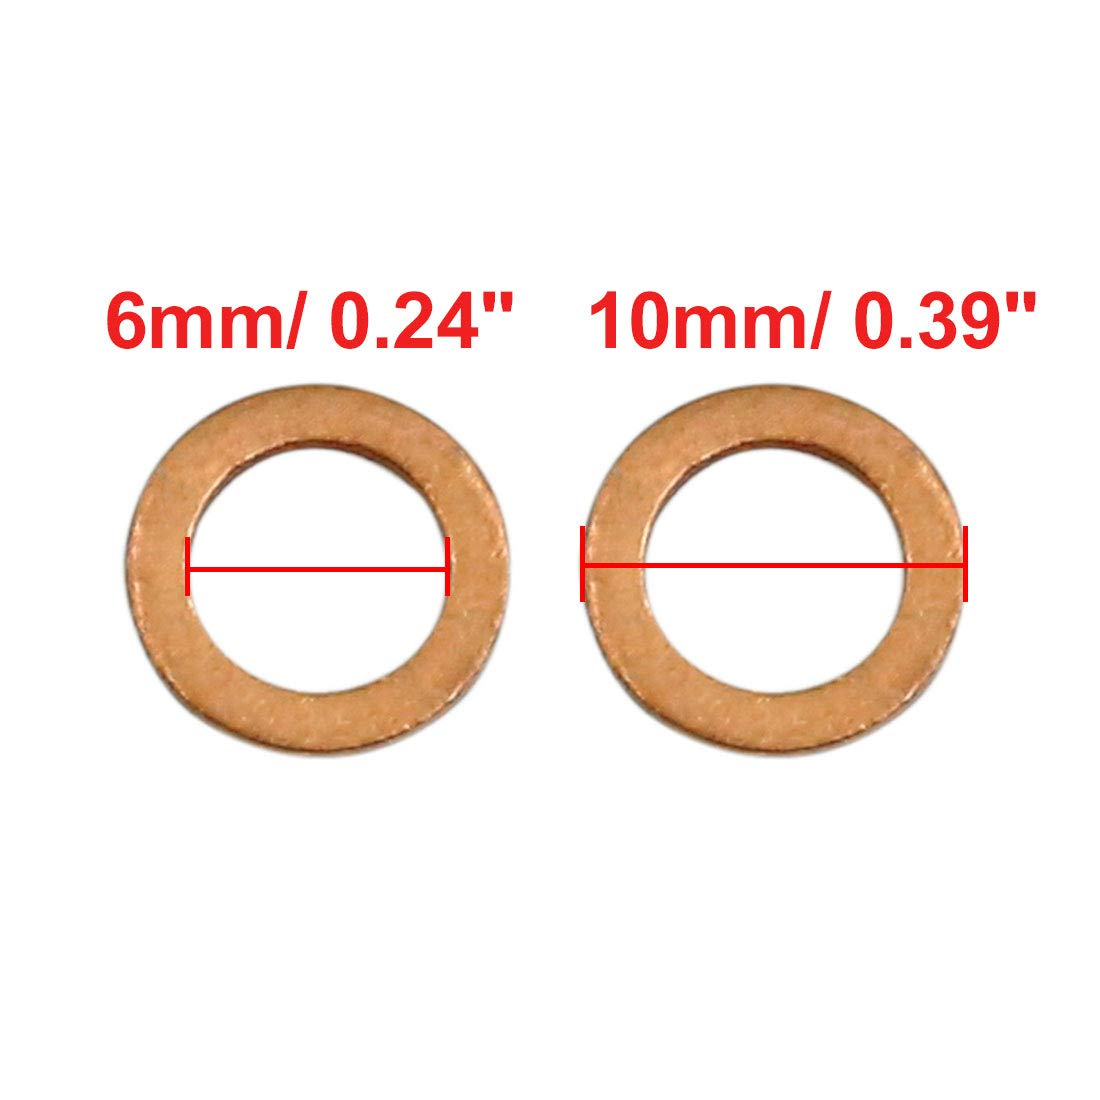 X AUTOHAUX 100 Pcs 6mm Inner Diameter Copper Washers Flat Sealing Gasket Rings for Car by X AUTOHAUX (Image #2)